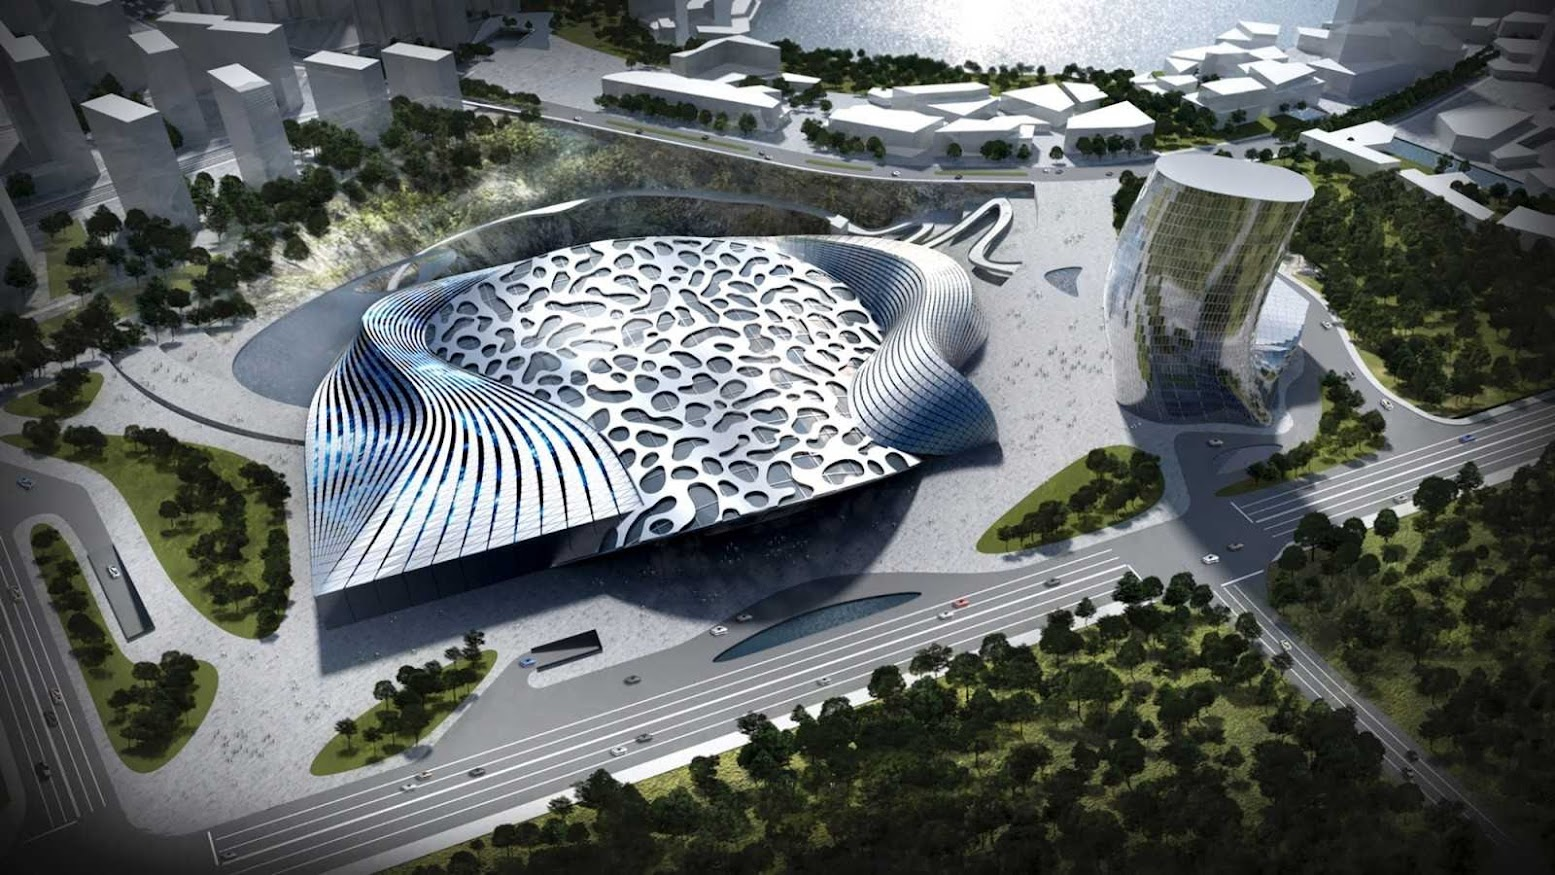 Changsha, Hunan, Cina: [DAWANG MOUNTAIN RESORT CHANGSHA BY COOP HIMMELB(L)AU]